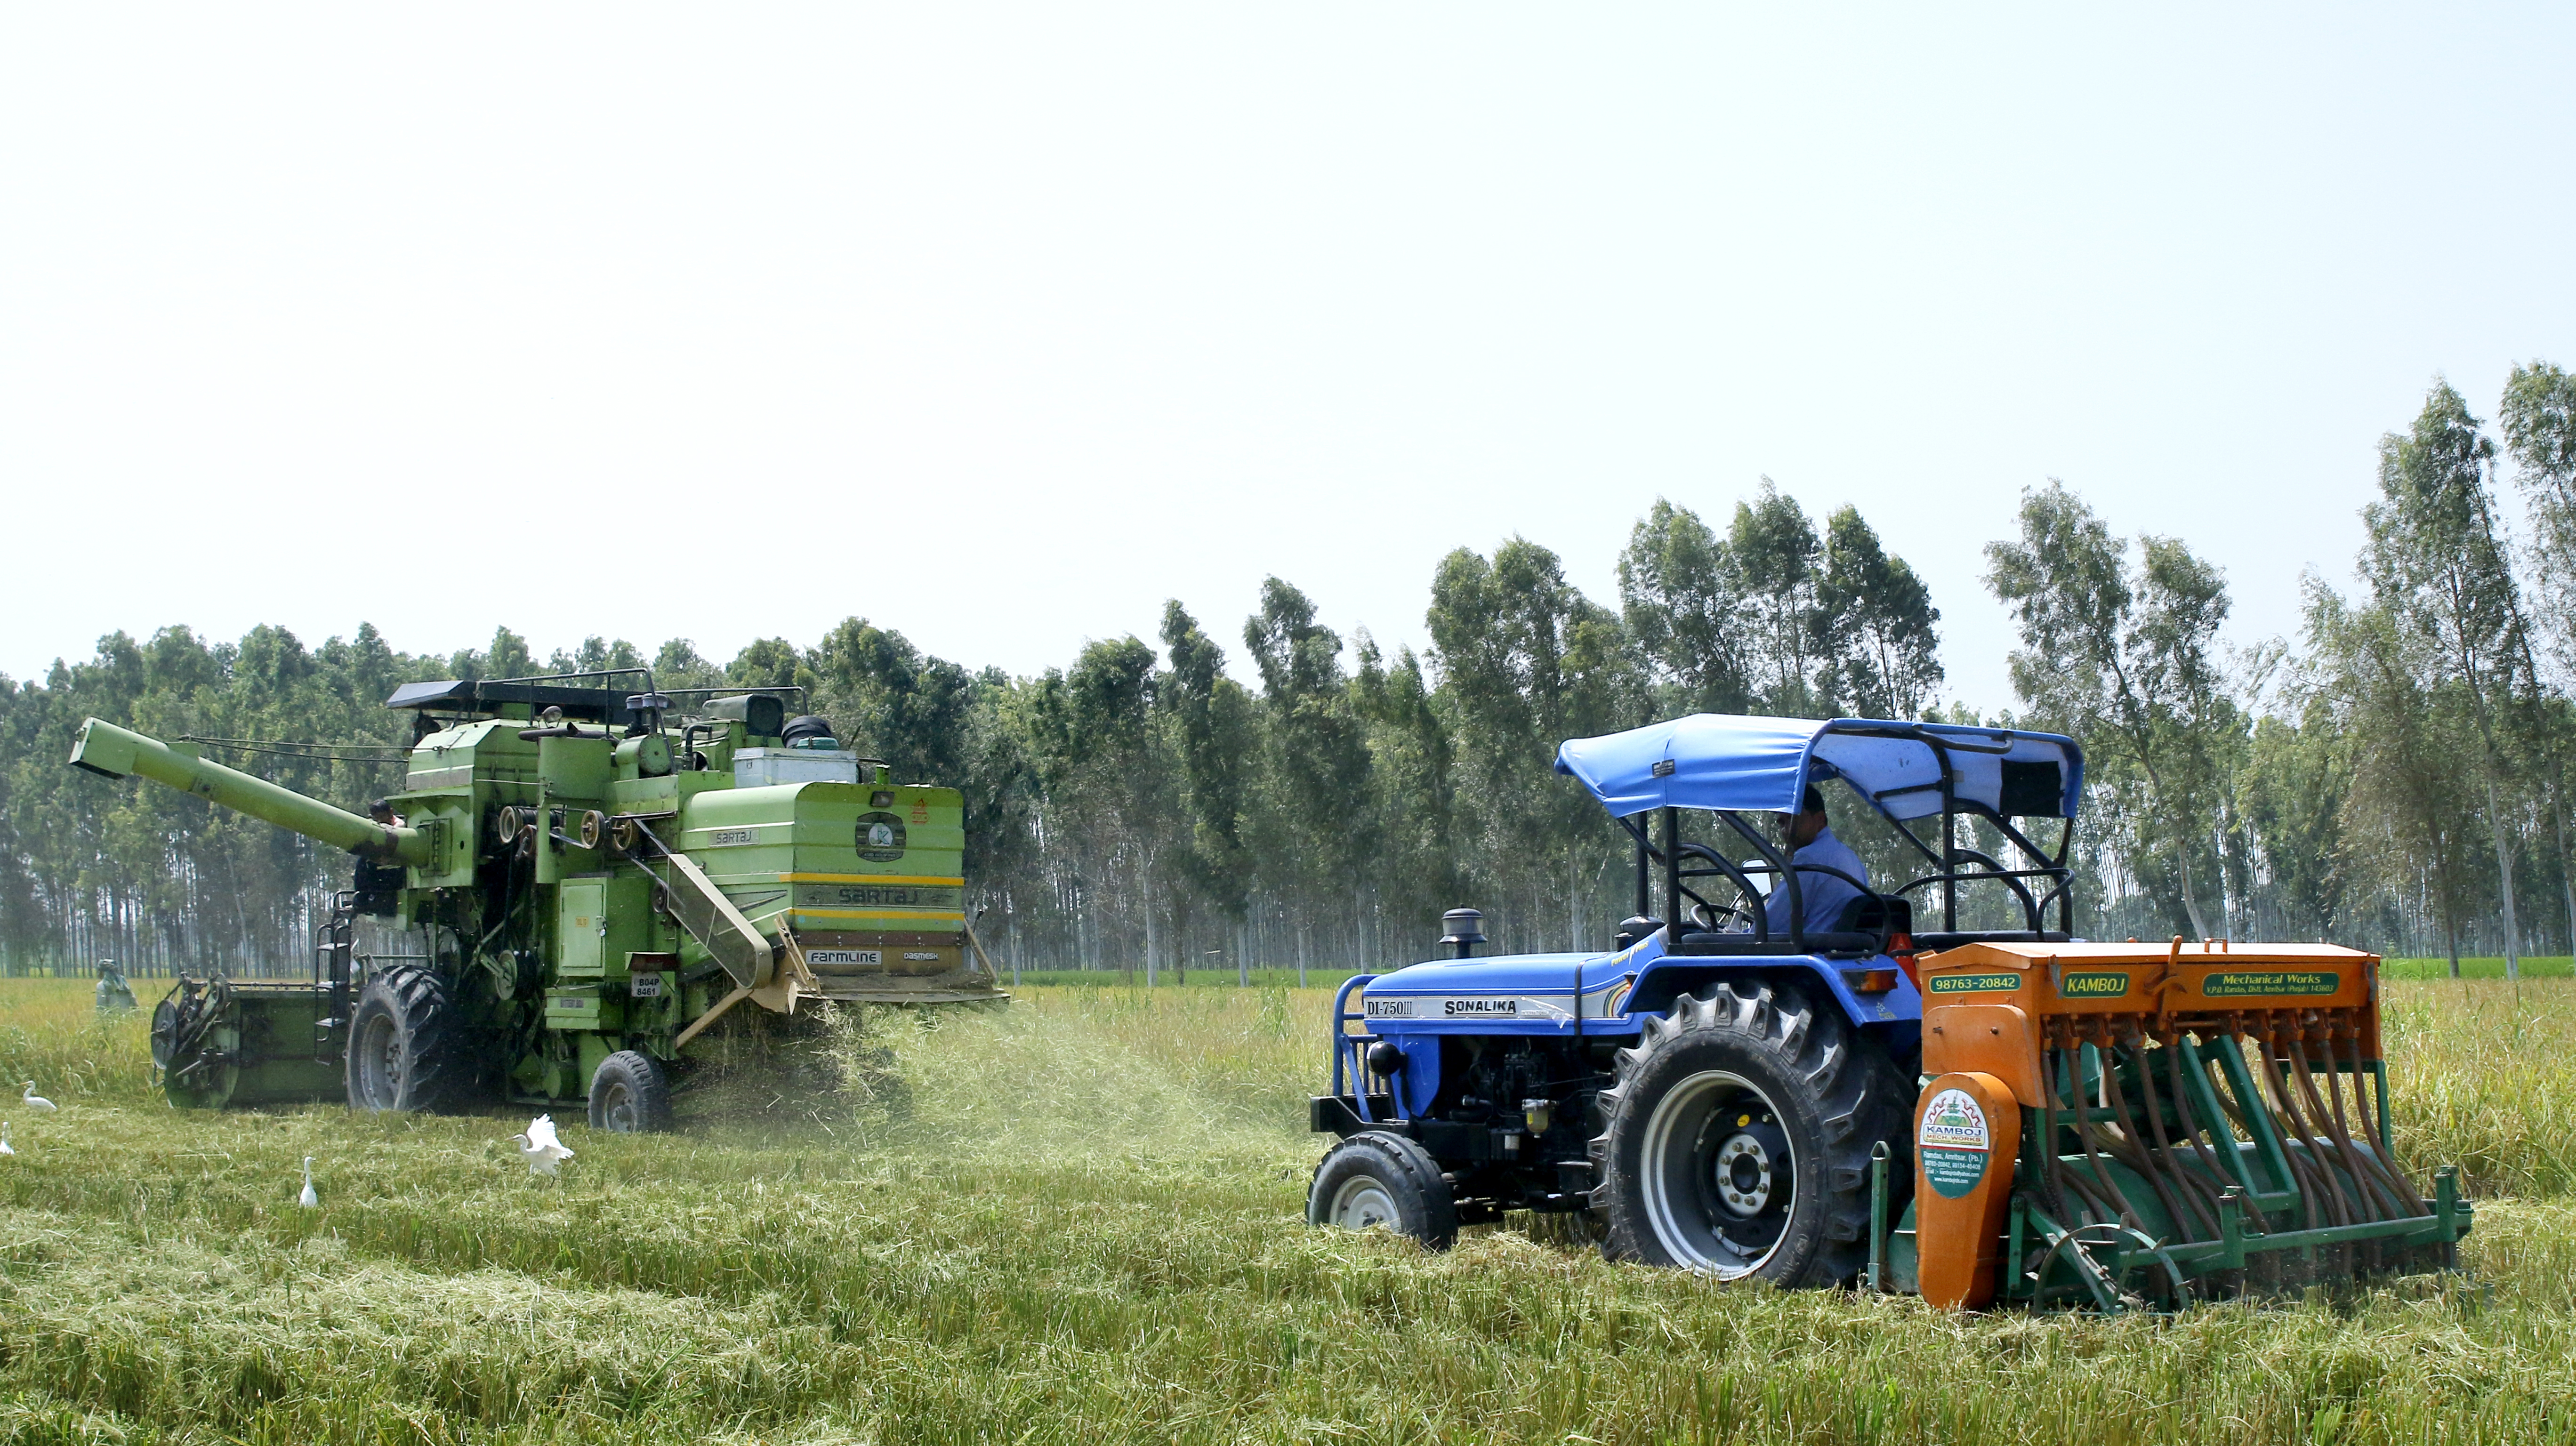 A combine harvester (left) equipped with the Super Straw Management System, or Super SMS, works alongside a tractor fitted with a Happy Seeder. (Photo: Sonalika Tractors)